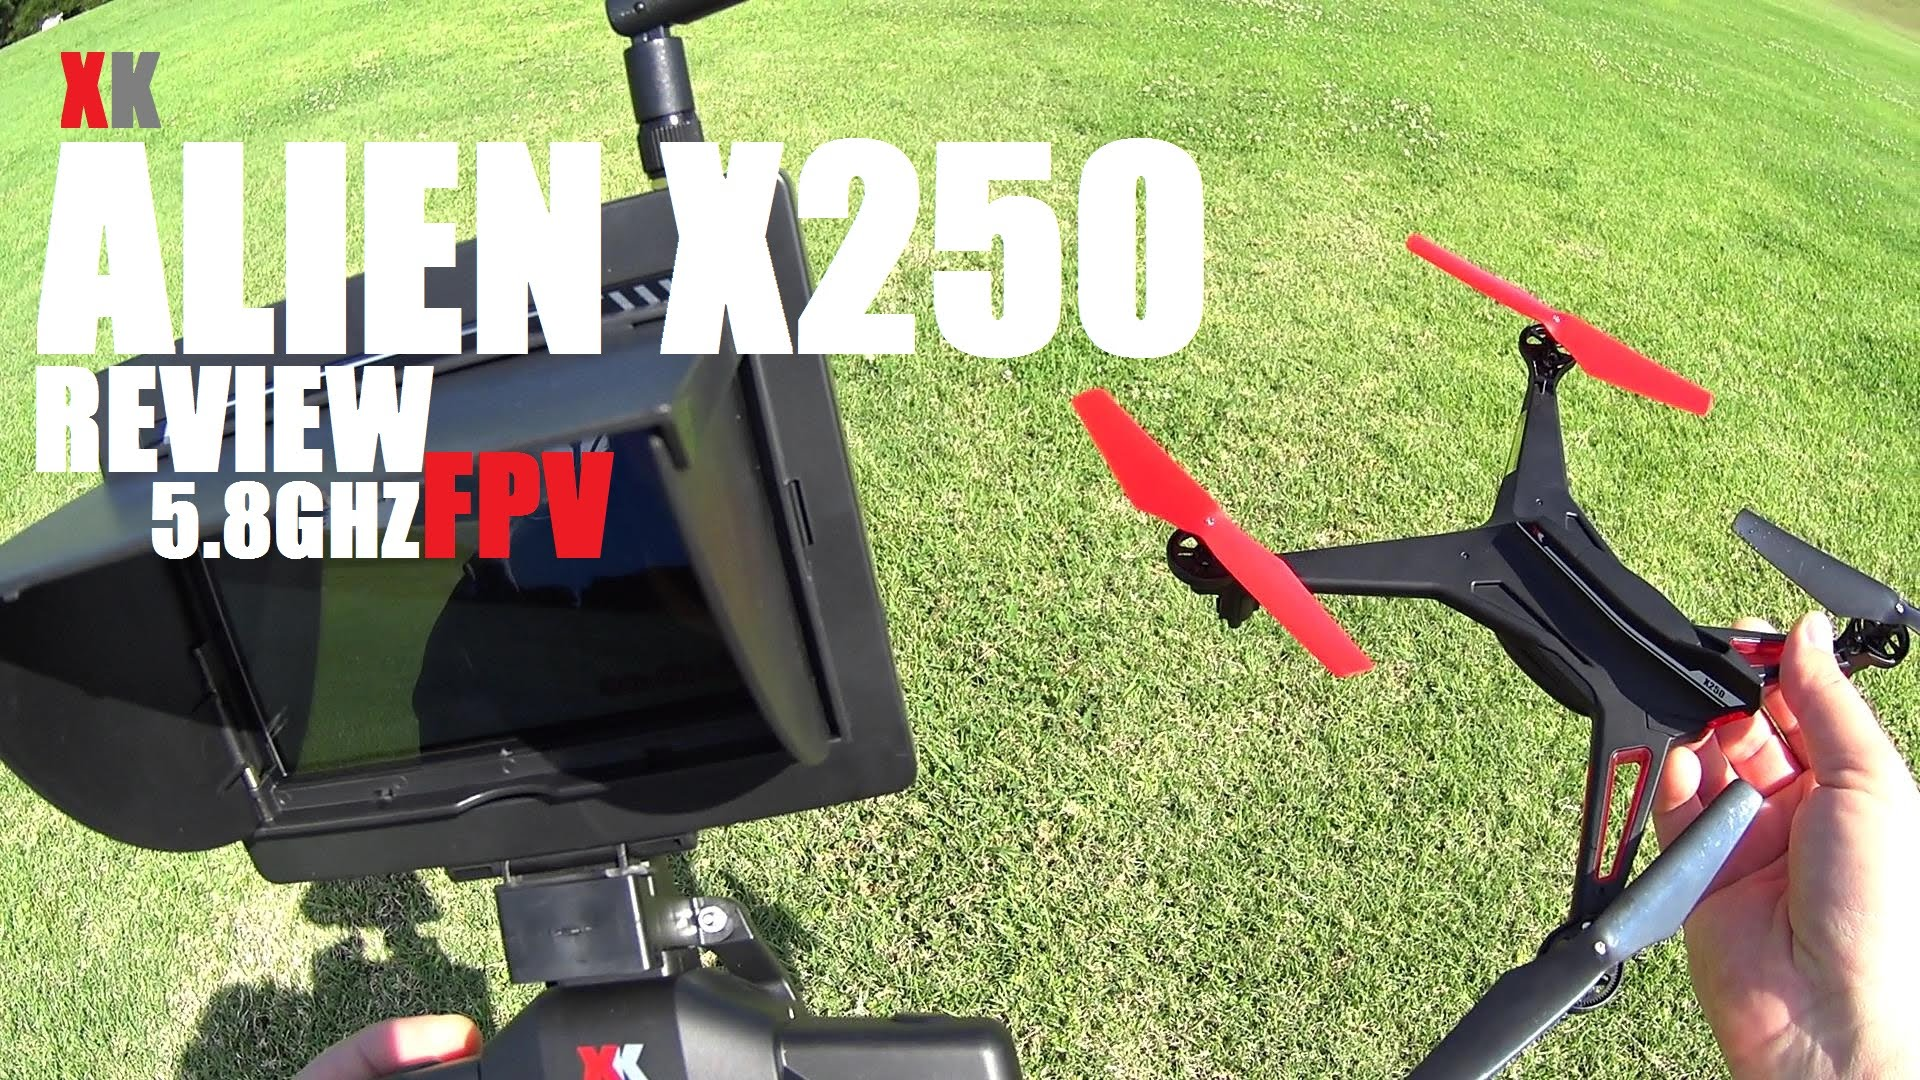 XK ALIEN X250 FPV 5 8ghz Quadcopter Review – [Flight Test